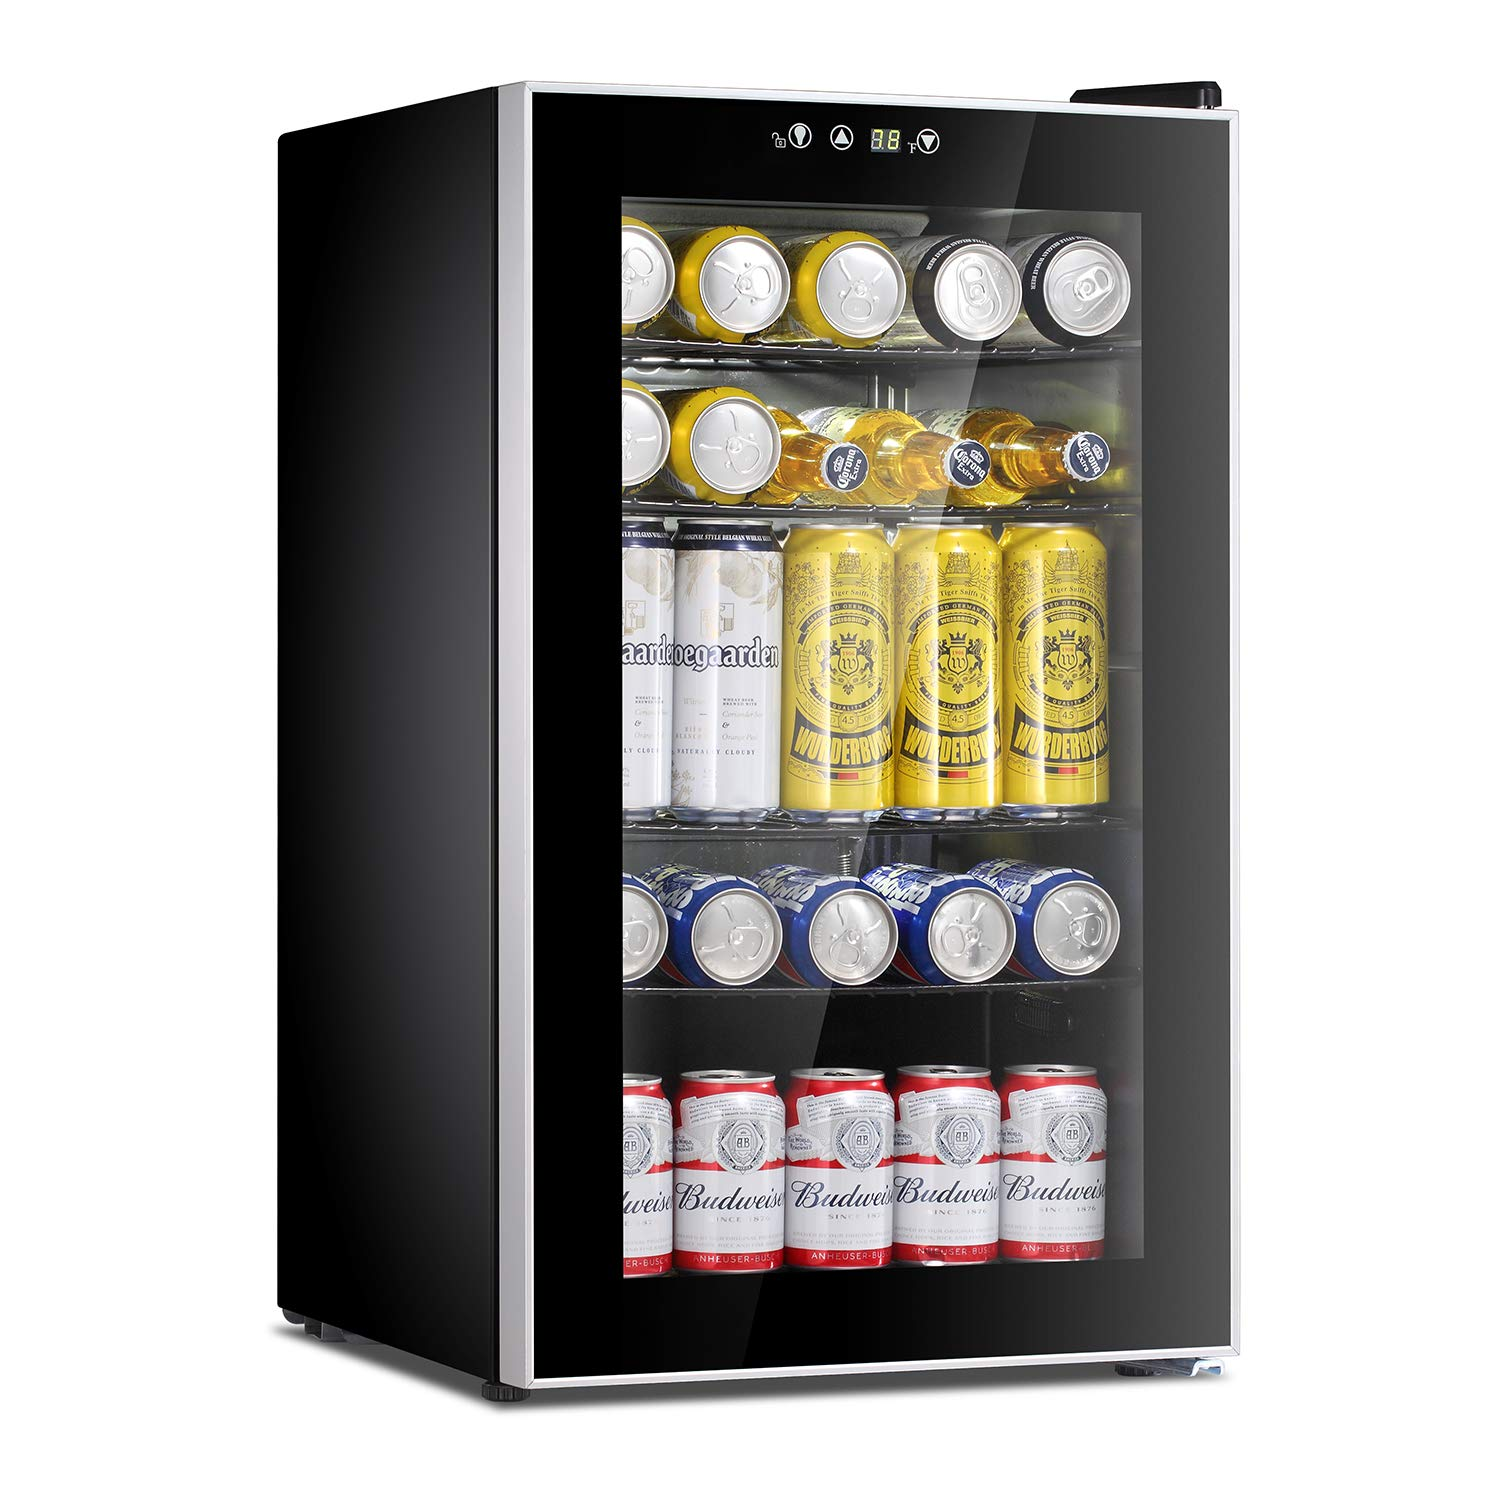 Antarctic Star Beverage Refrigerator Cooler - 85 Can Mini Fridge Glass Door for Soda Beer or Wine – Glass Door Small Drink Dispenser Machine Adjustable Removable for Home, Office or Bar, 2.9cu.ft.